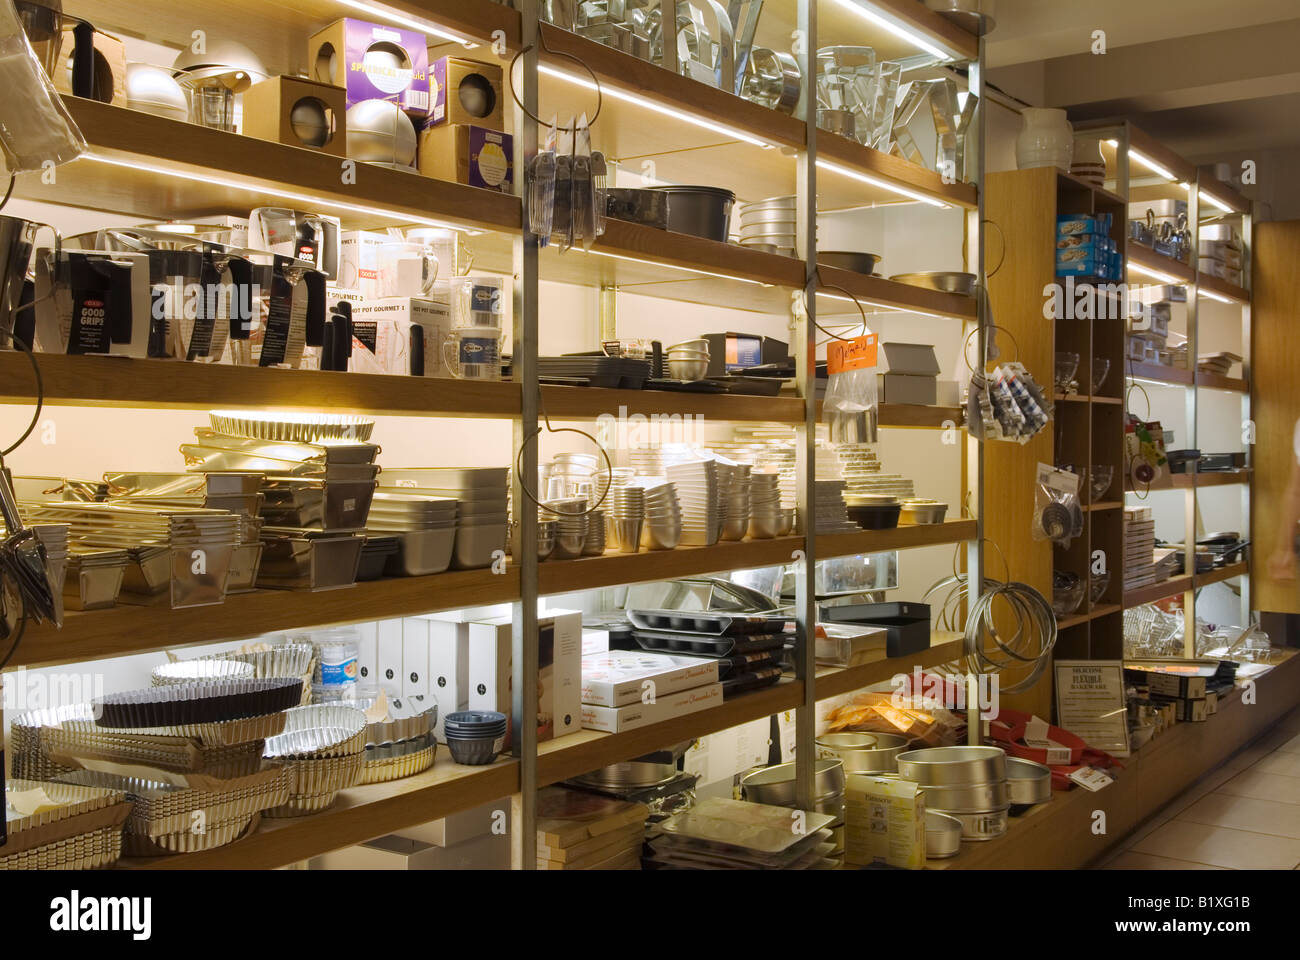 Inneren Divertimenti K Che Ausr Stungsshop Maryledbone High Street London Stockfoto Bild